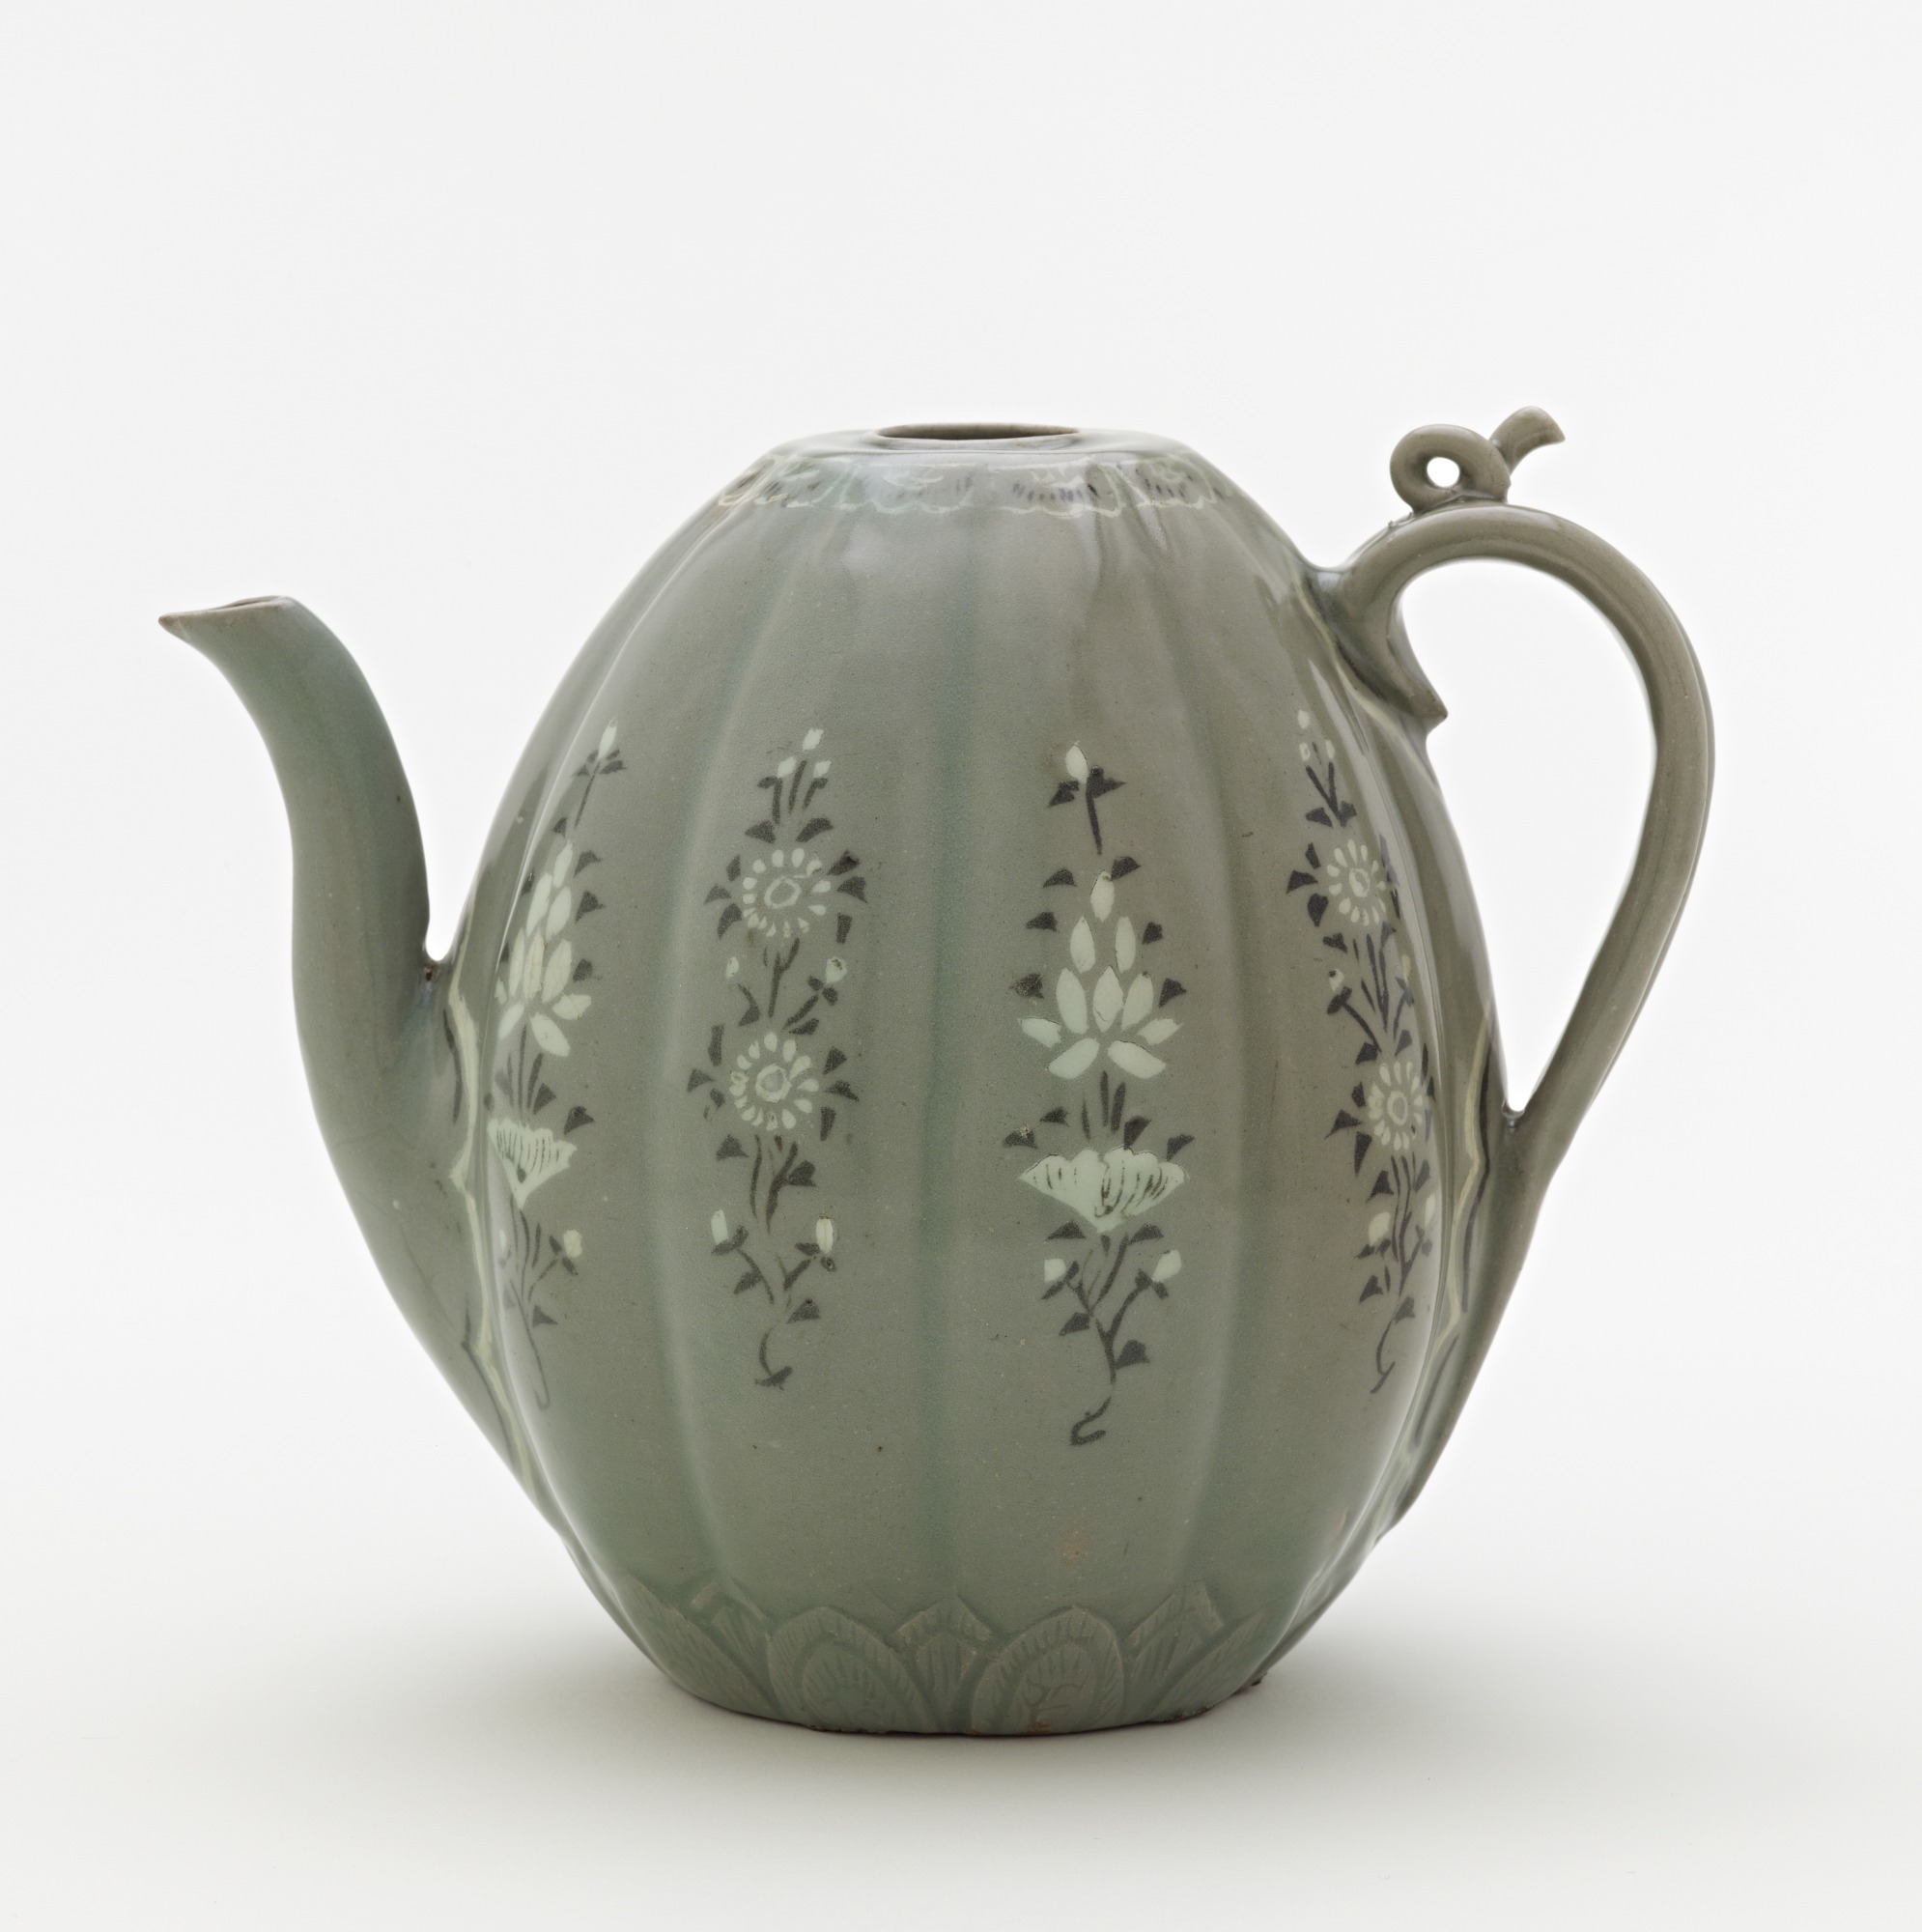 Ewer with inlaid designs of peony and chrysanthemum, profile